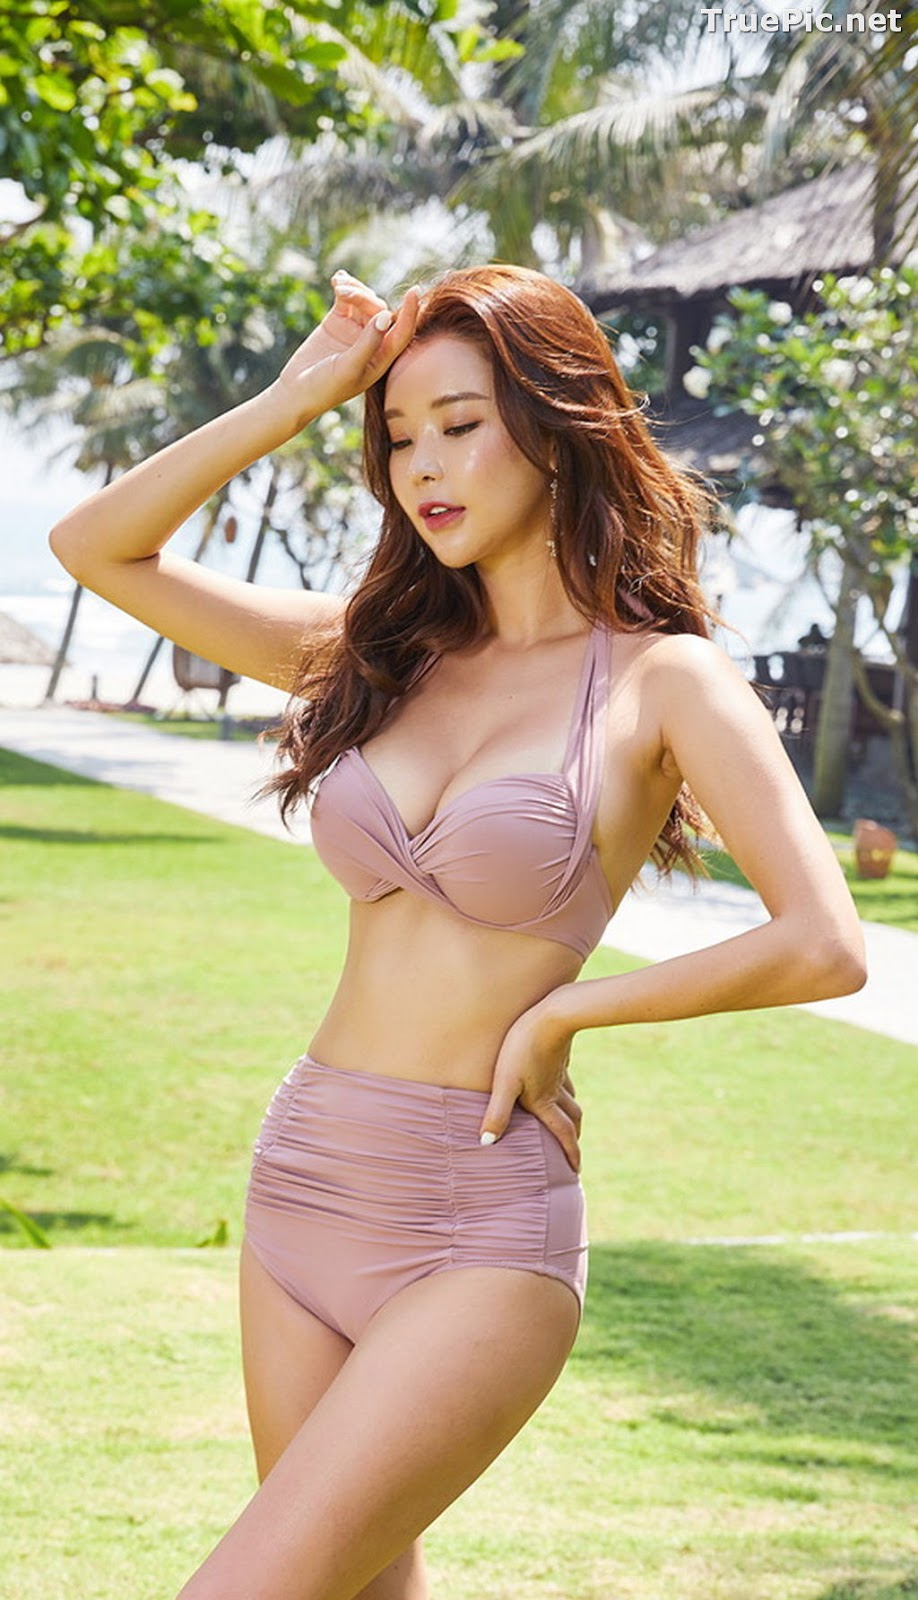 Image Park Da Hyun - Korean Fashion Model - Rose Mellow Pale Pink Bikini - TruePic.net - Picture-4